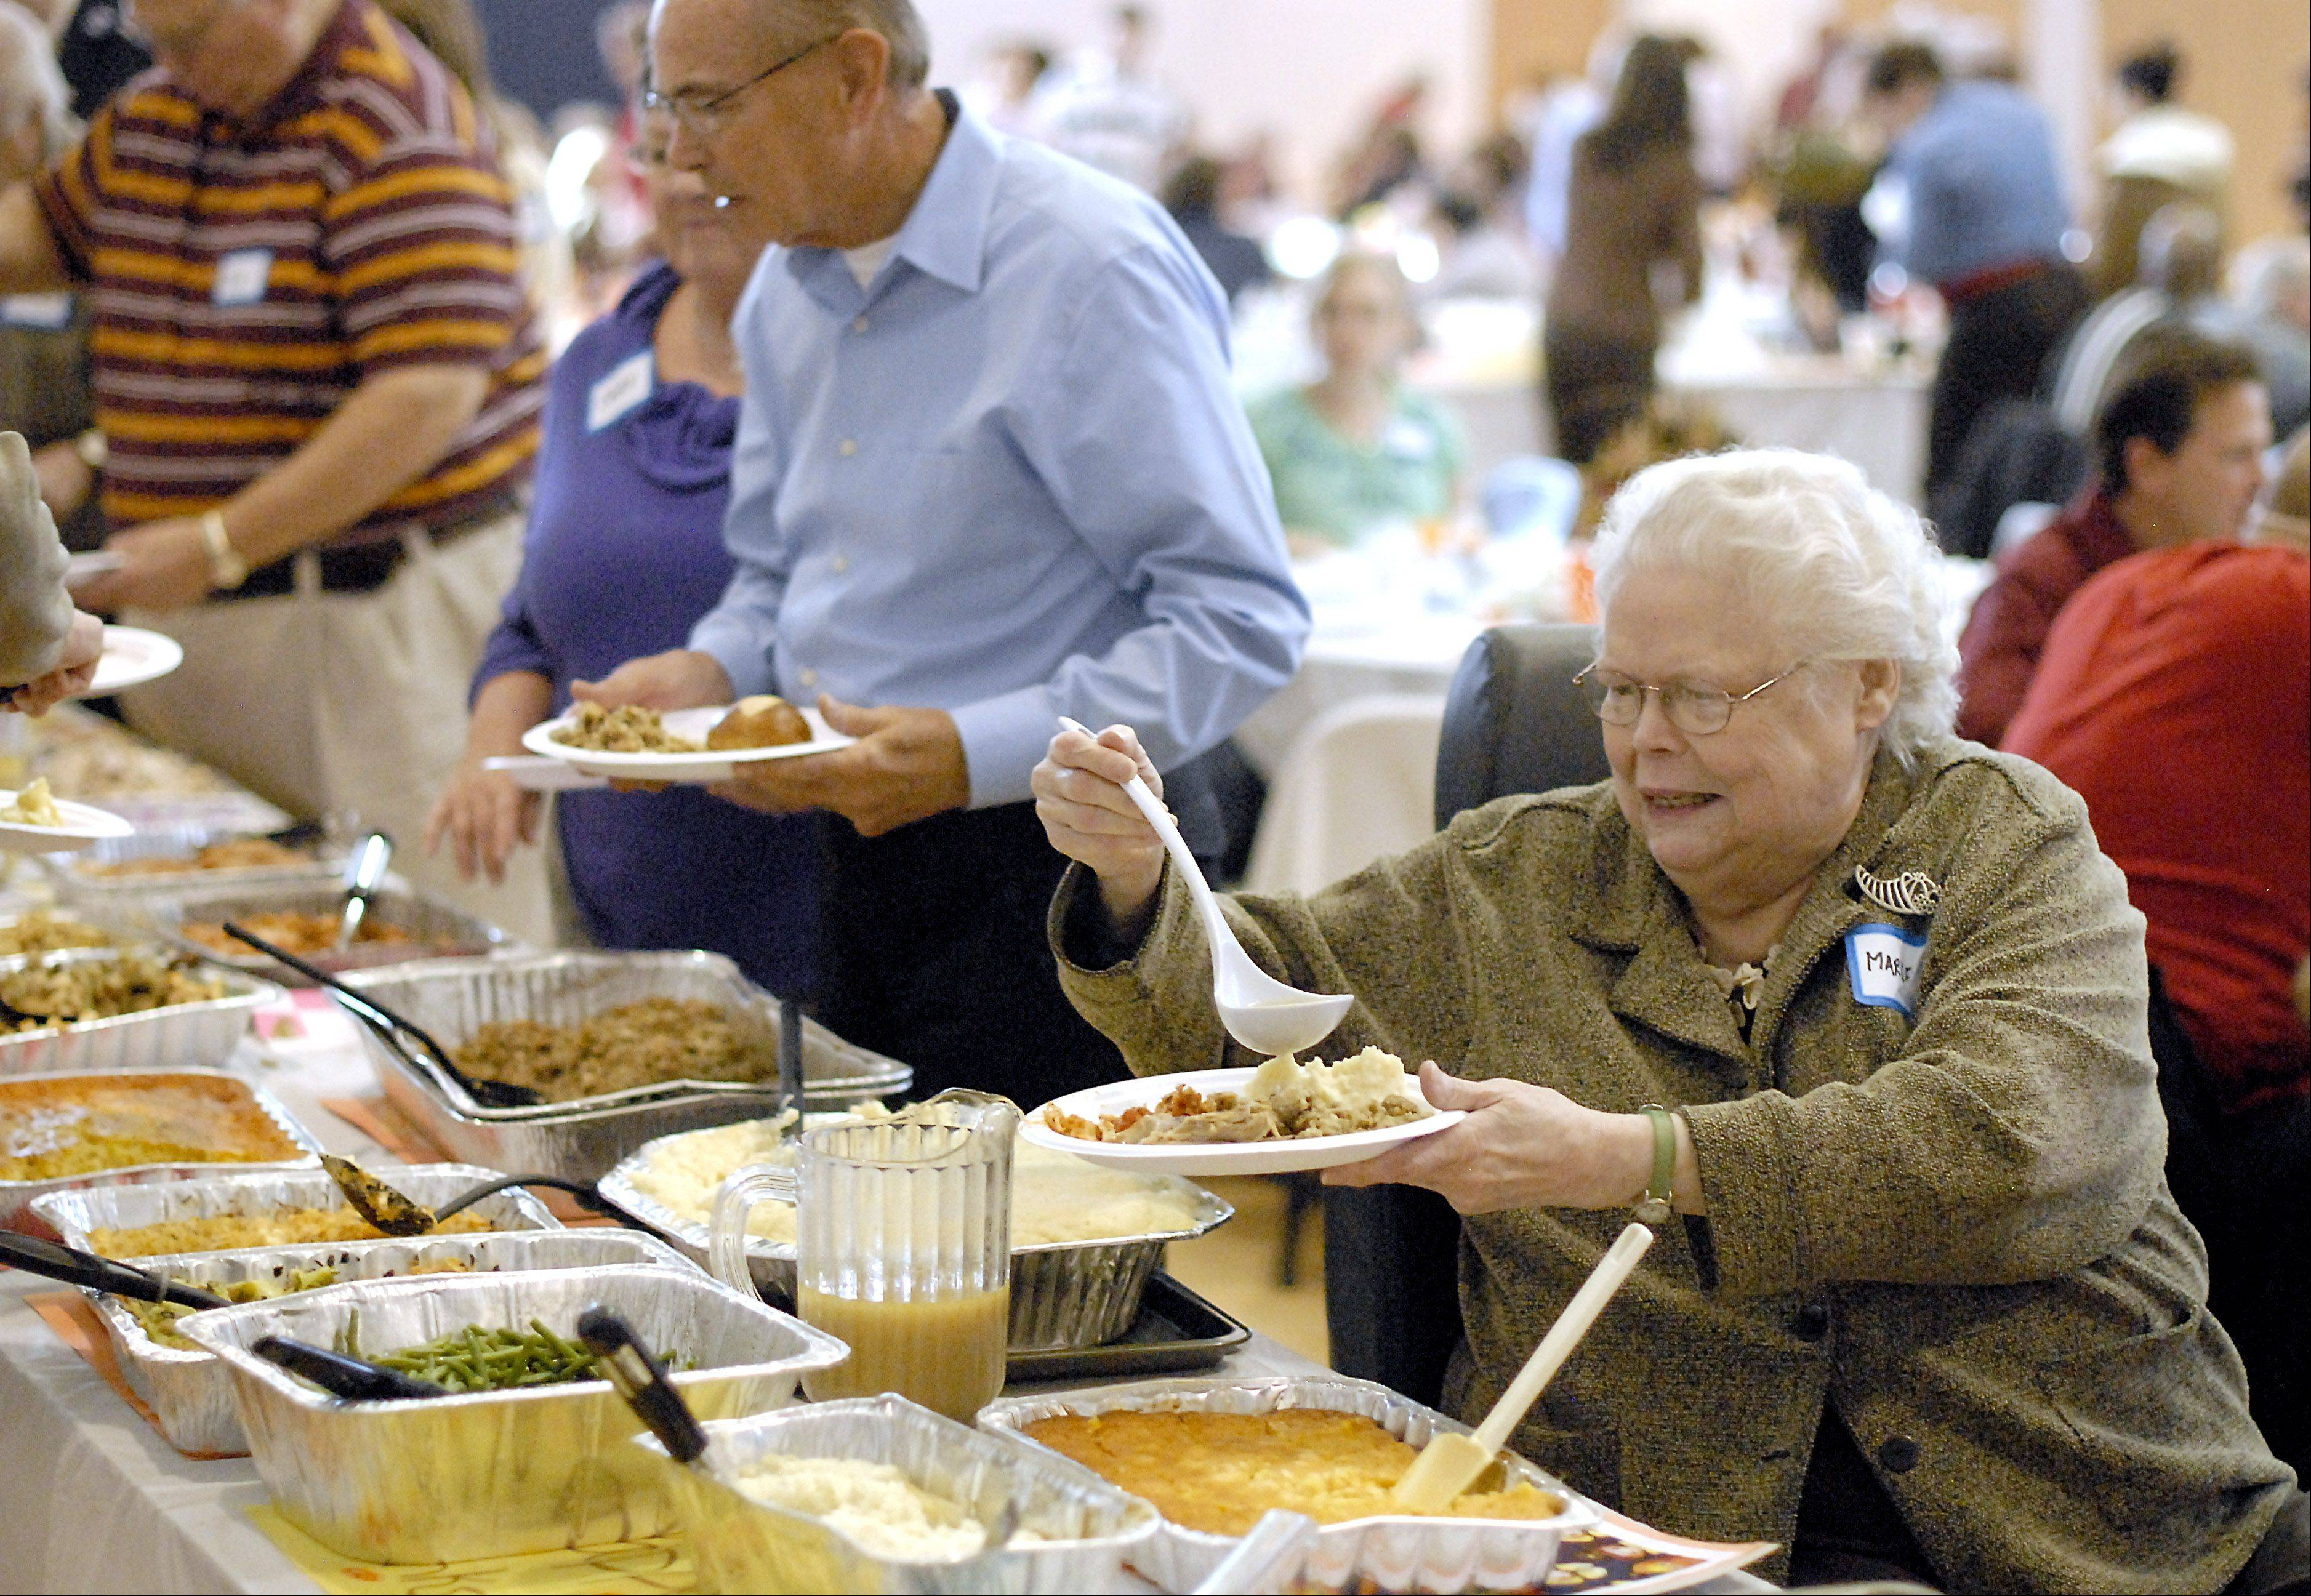 Marlene Thanepohn of St. Charles fills her plate at Lazarus House's annual Thanksgiving Day dinner at the Salvation Army in St. Charles. Thanepohn came by herself. After spending the past four years alone, she decided to come to the community dinner.